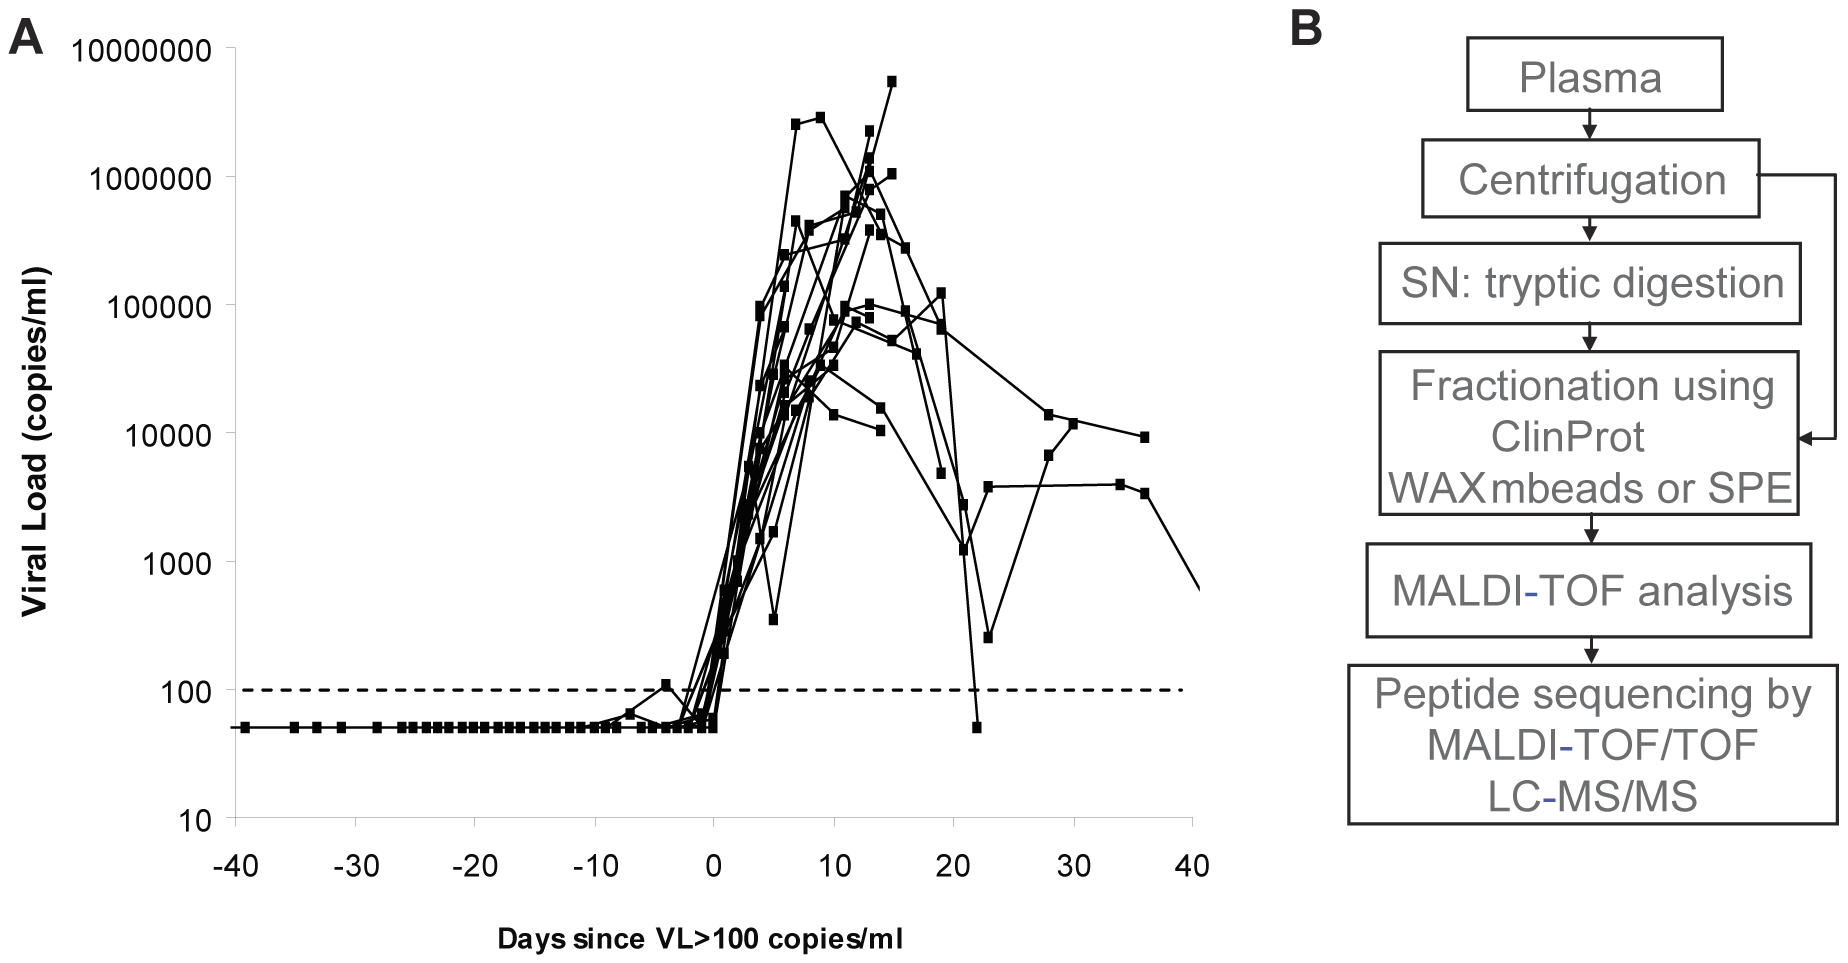 Characterization of plasma panels obtained from HIV-1-infected subjects.